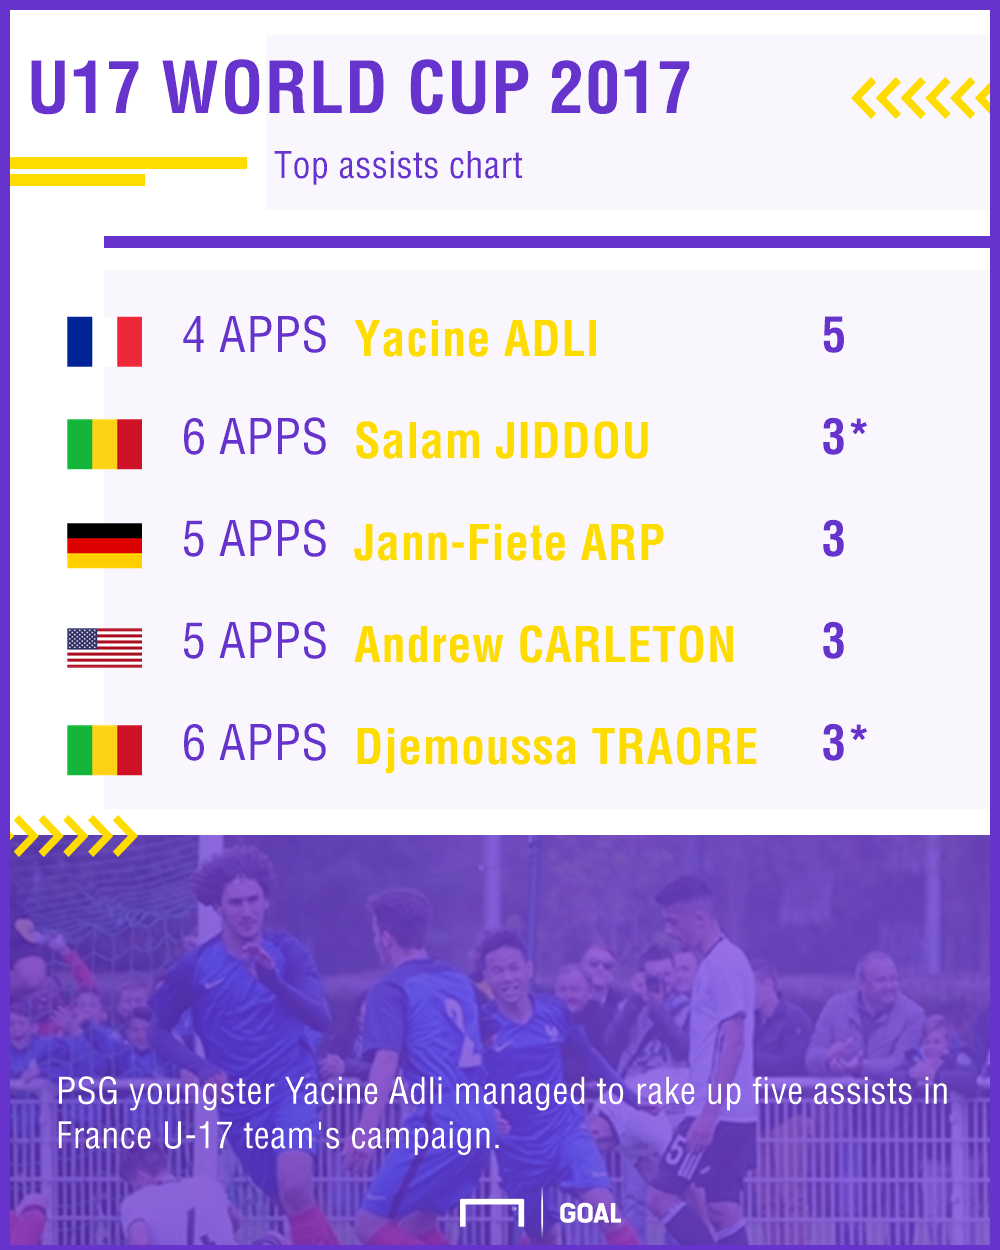 U17 World Cup top assists chart